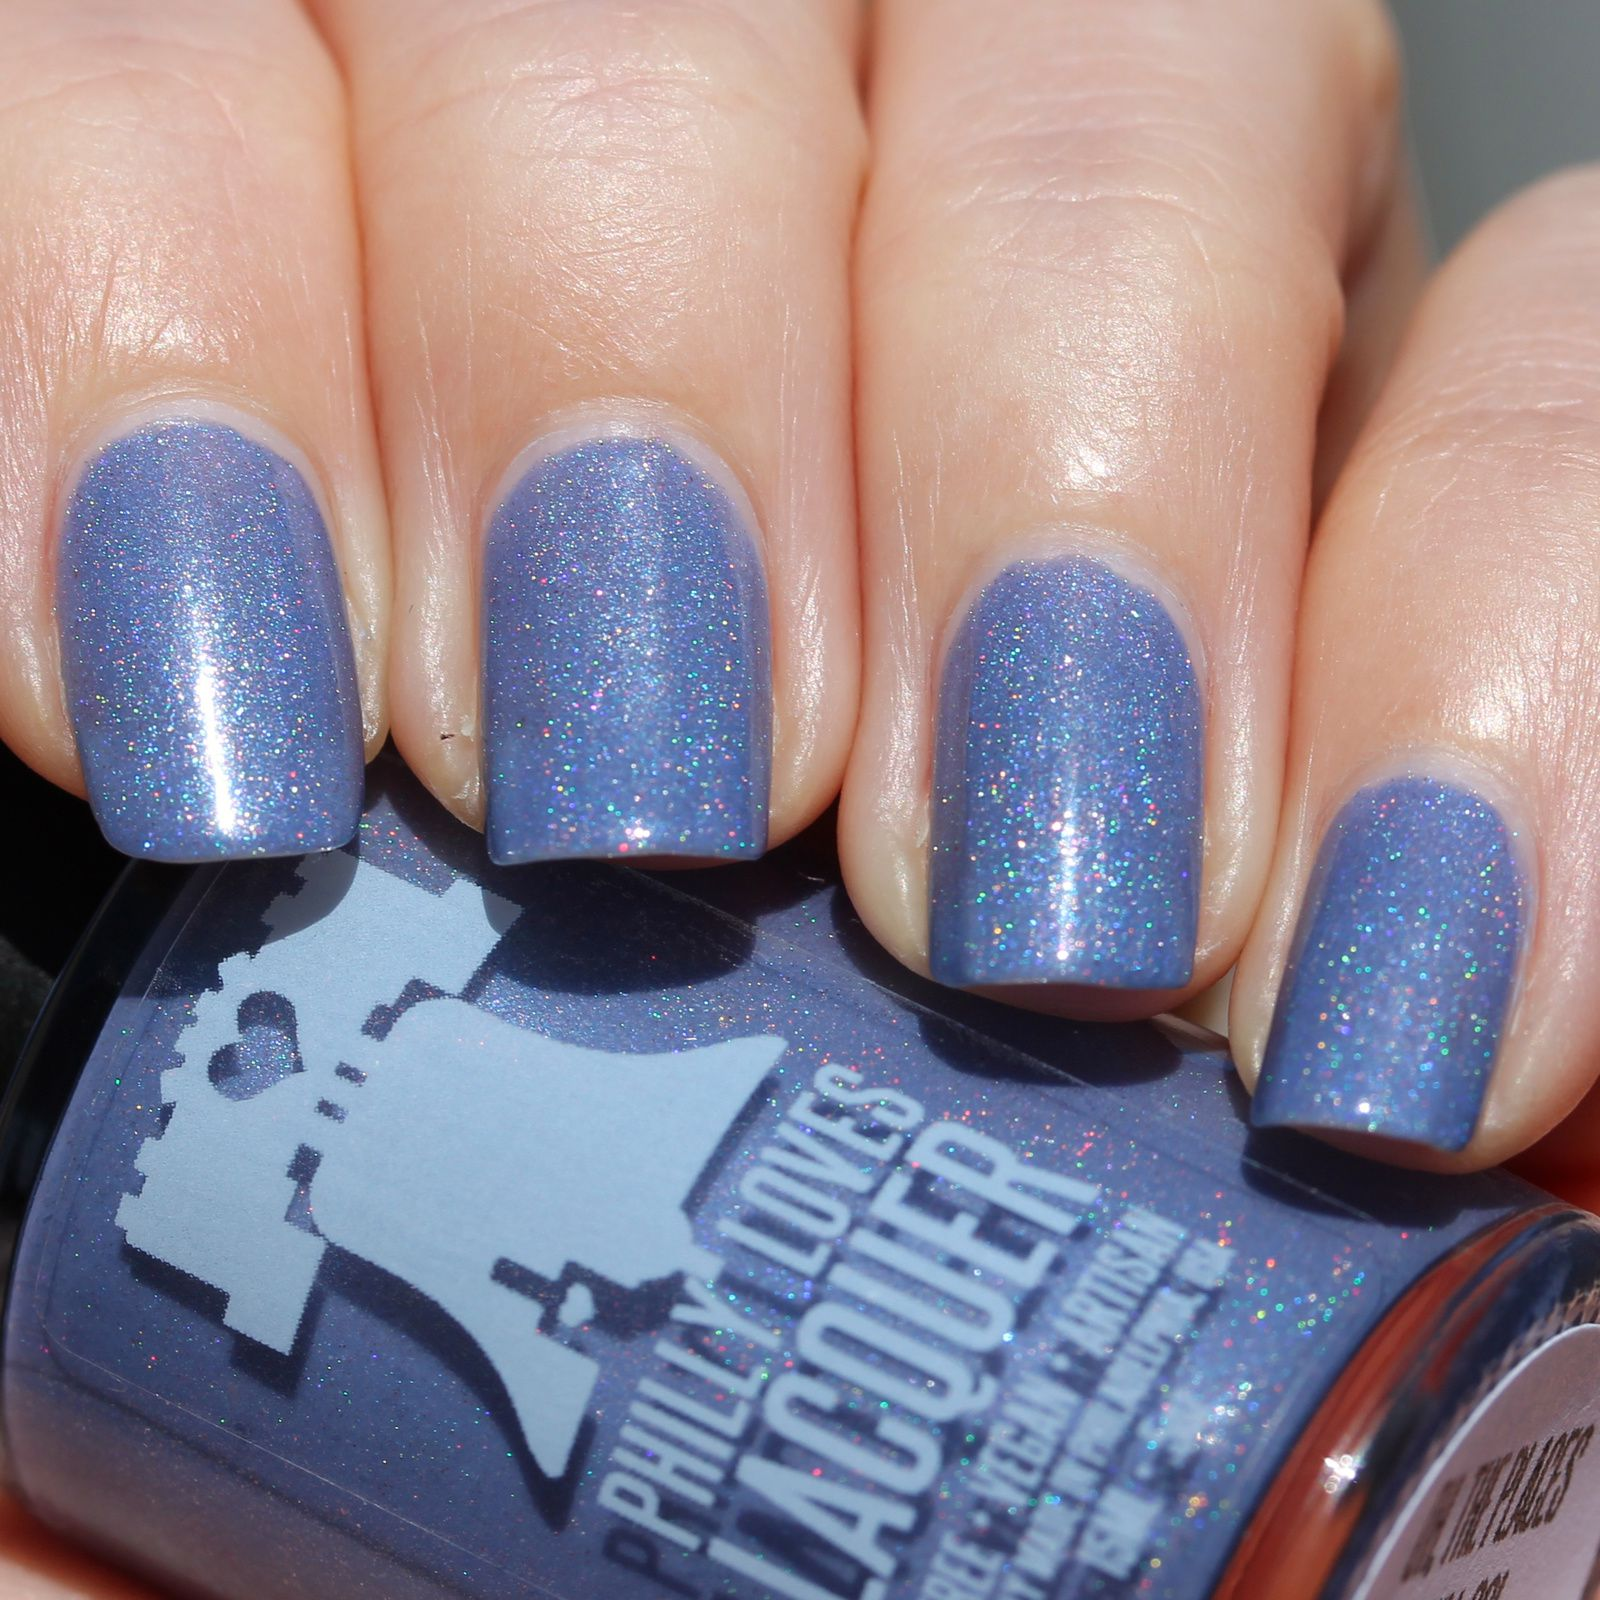 Philly Loves Lacquer Oh, the places You'll Go! (2 coats, not top coat)